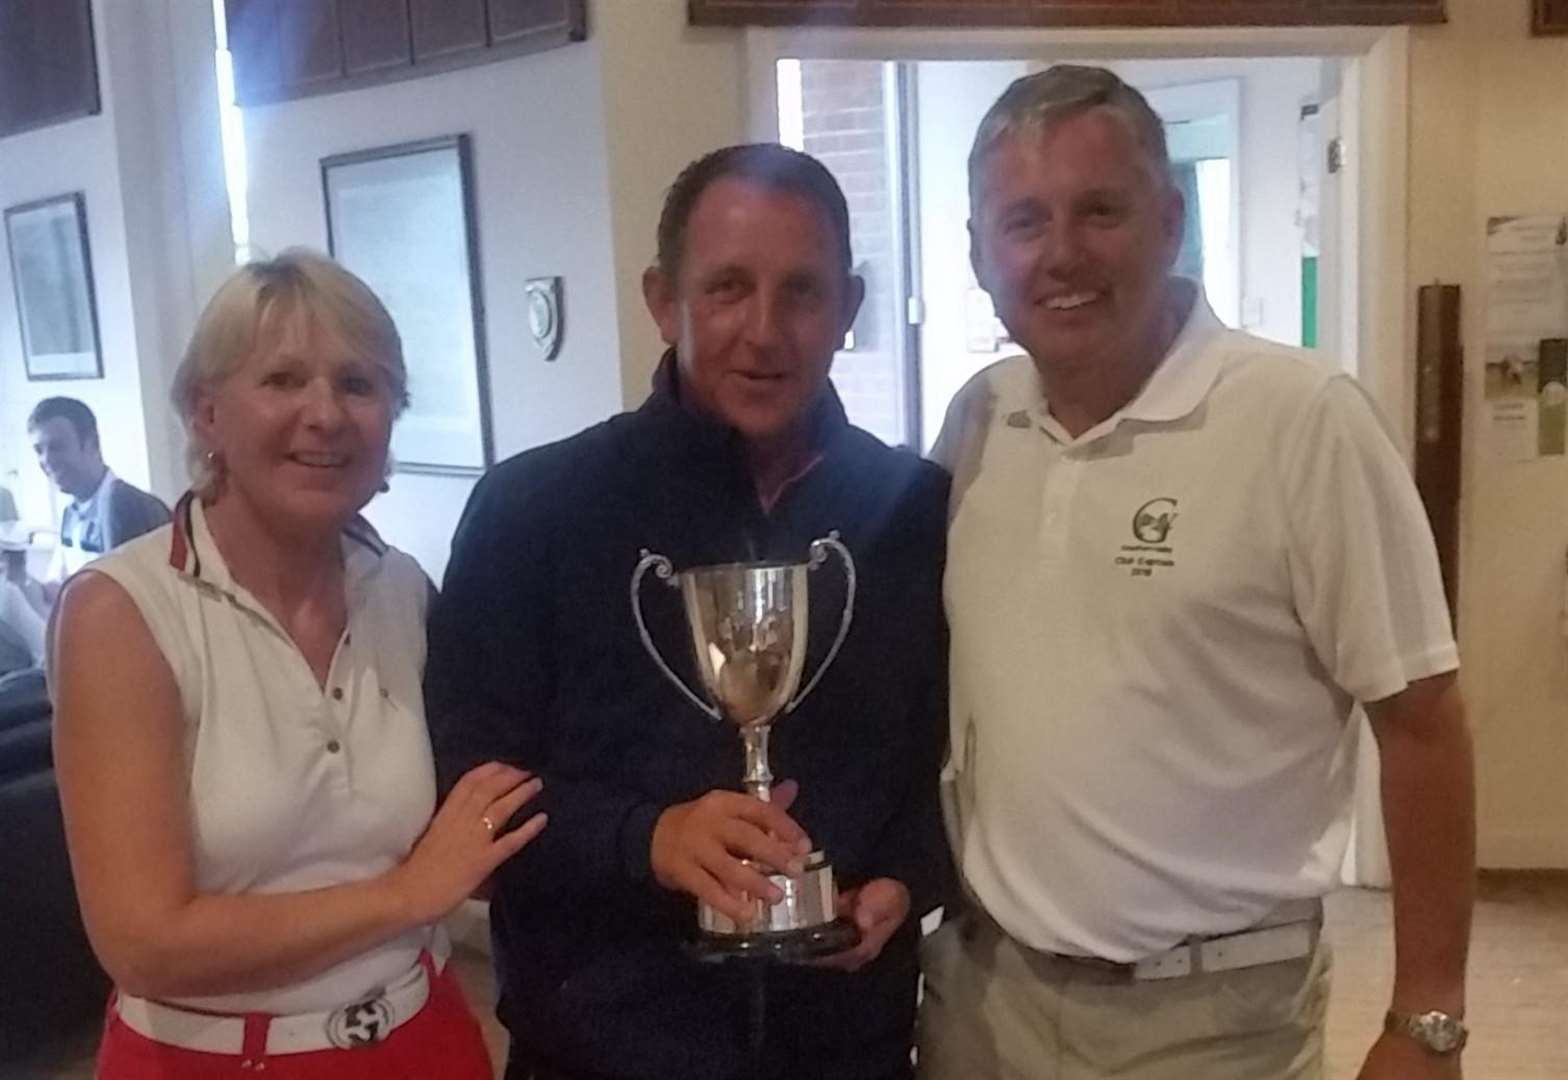 GOLF: Trevor and Sophie are champions after Greetham Valley glory